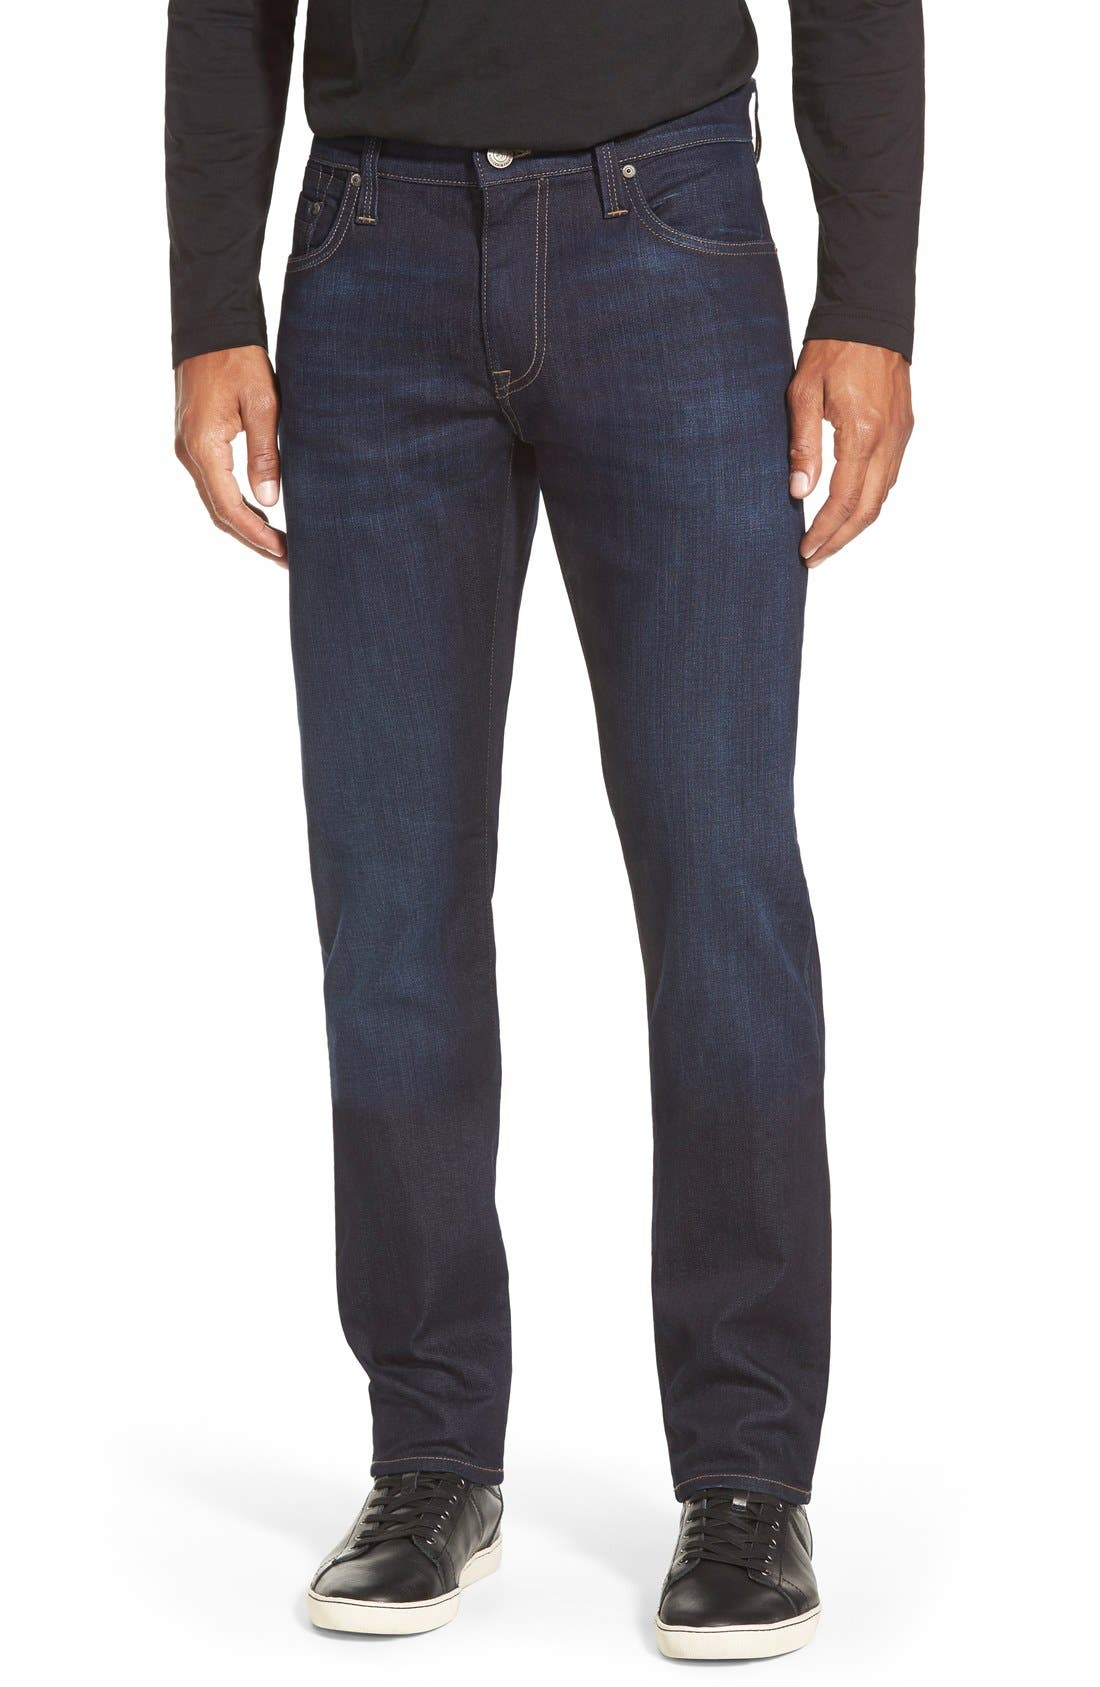 'Jake' Skinny Fit Jeans,                             Main thumbnail 1, color,                             RINSE BRUSHED WILLIAMSBURG